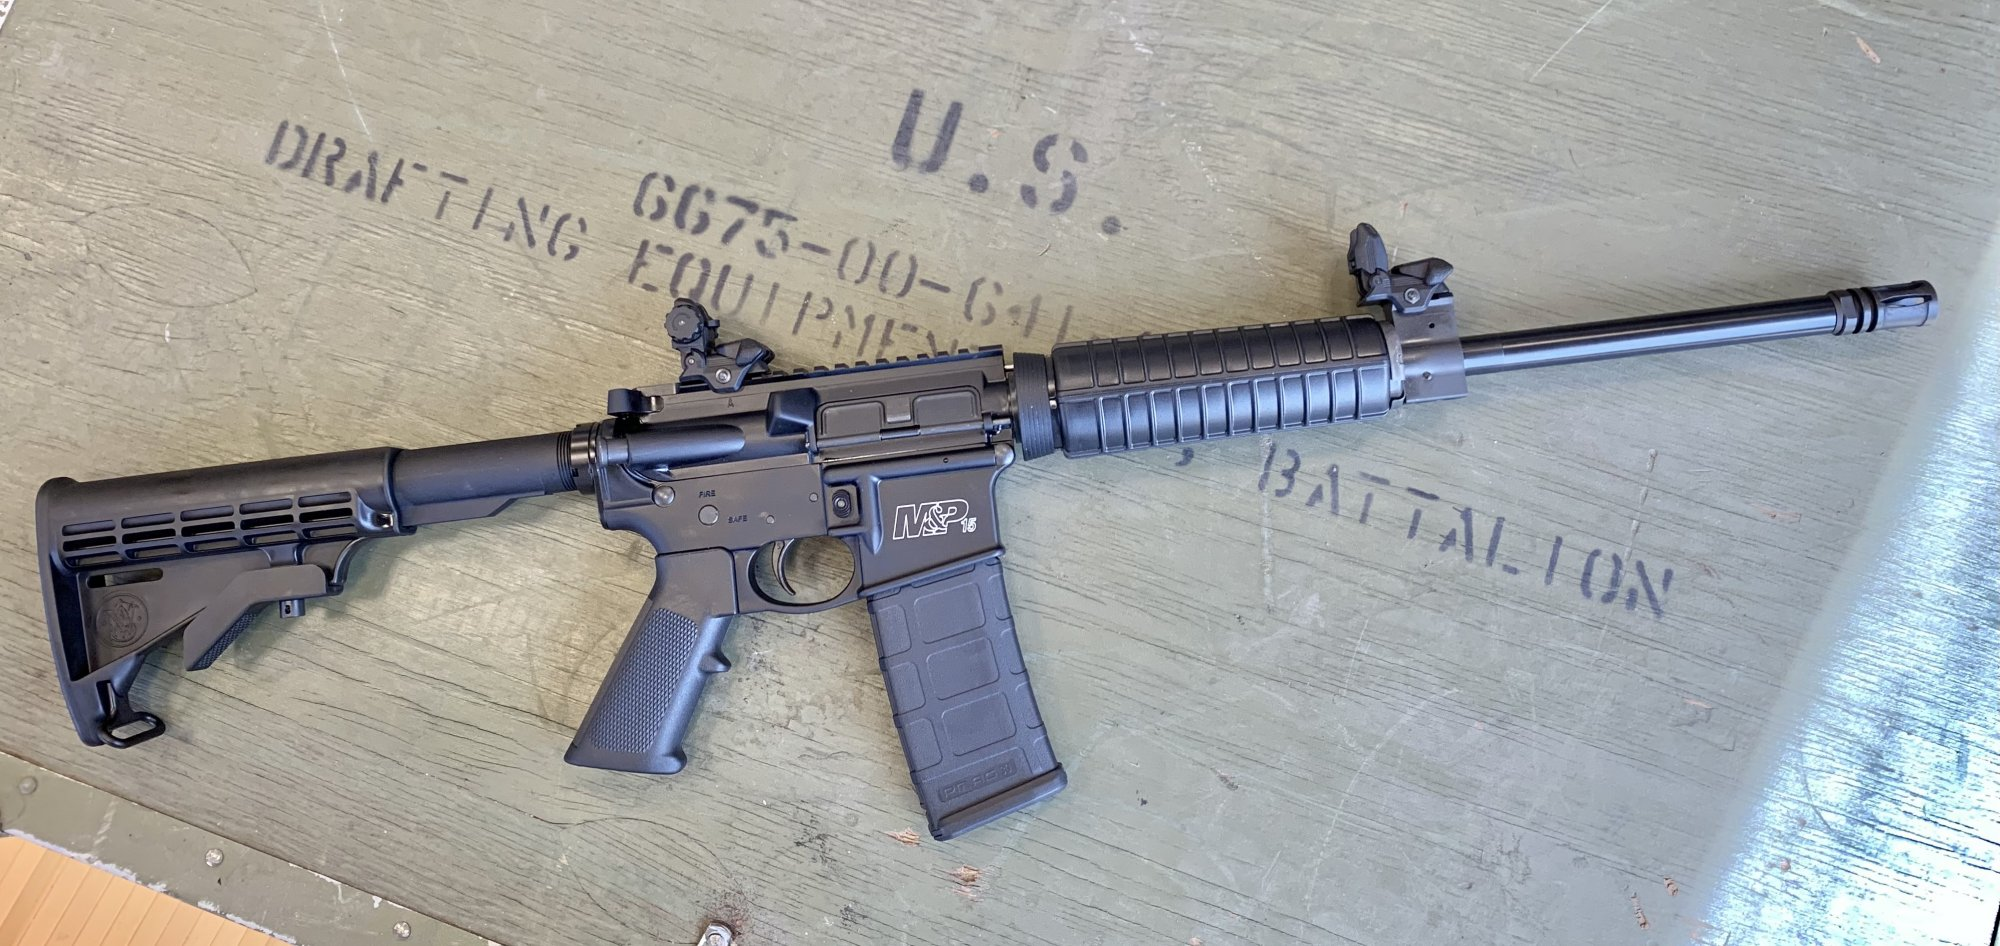 Smith & Wesson M&P-15 Sport II w/ flip-up sights